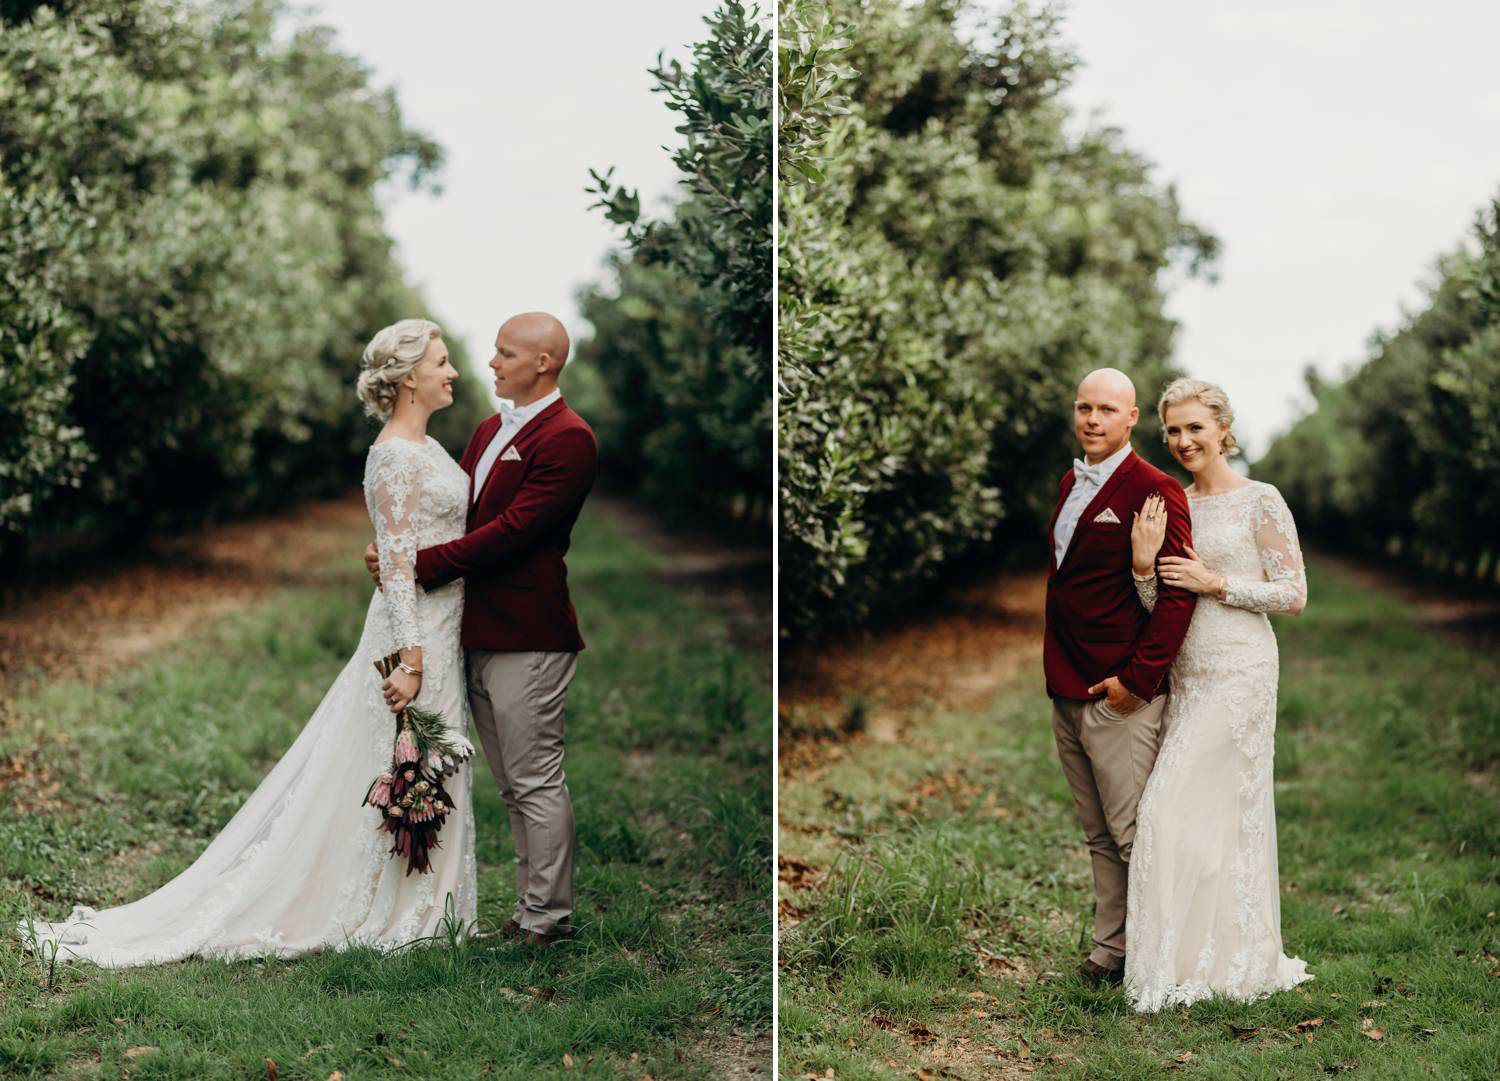 Bride and Groom standing in orchard